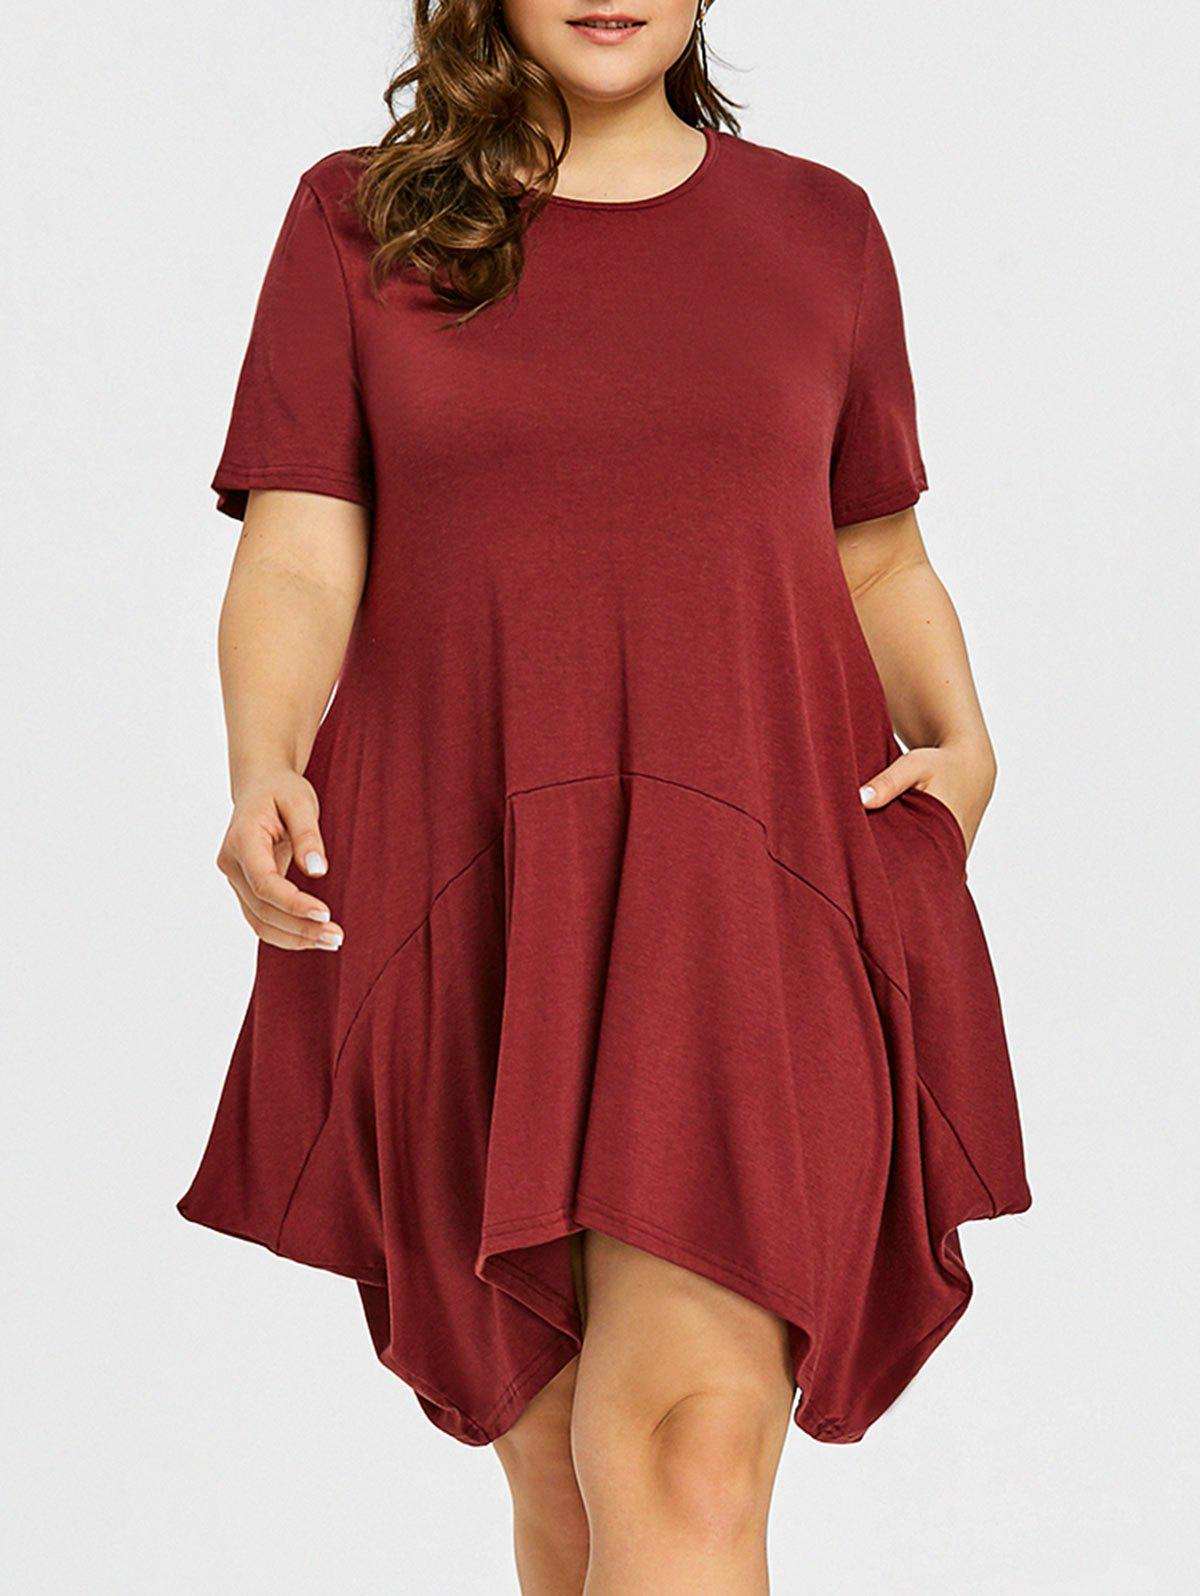 Plus Size T-shirt Swing Dress with Pocket